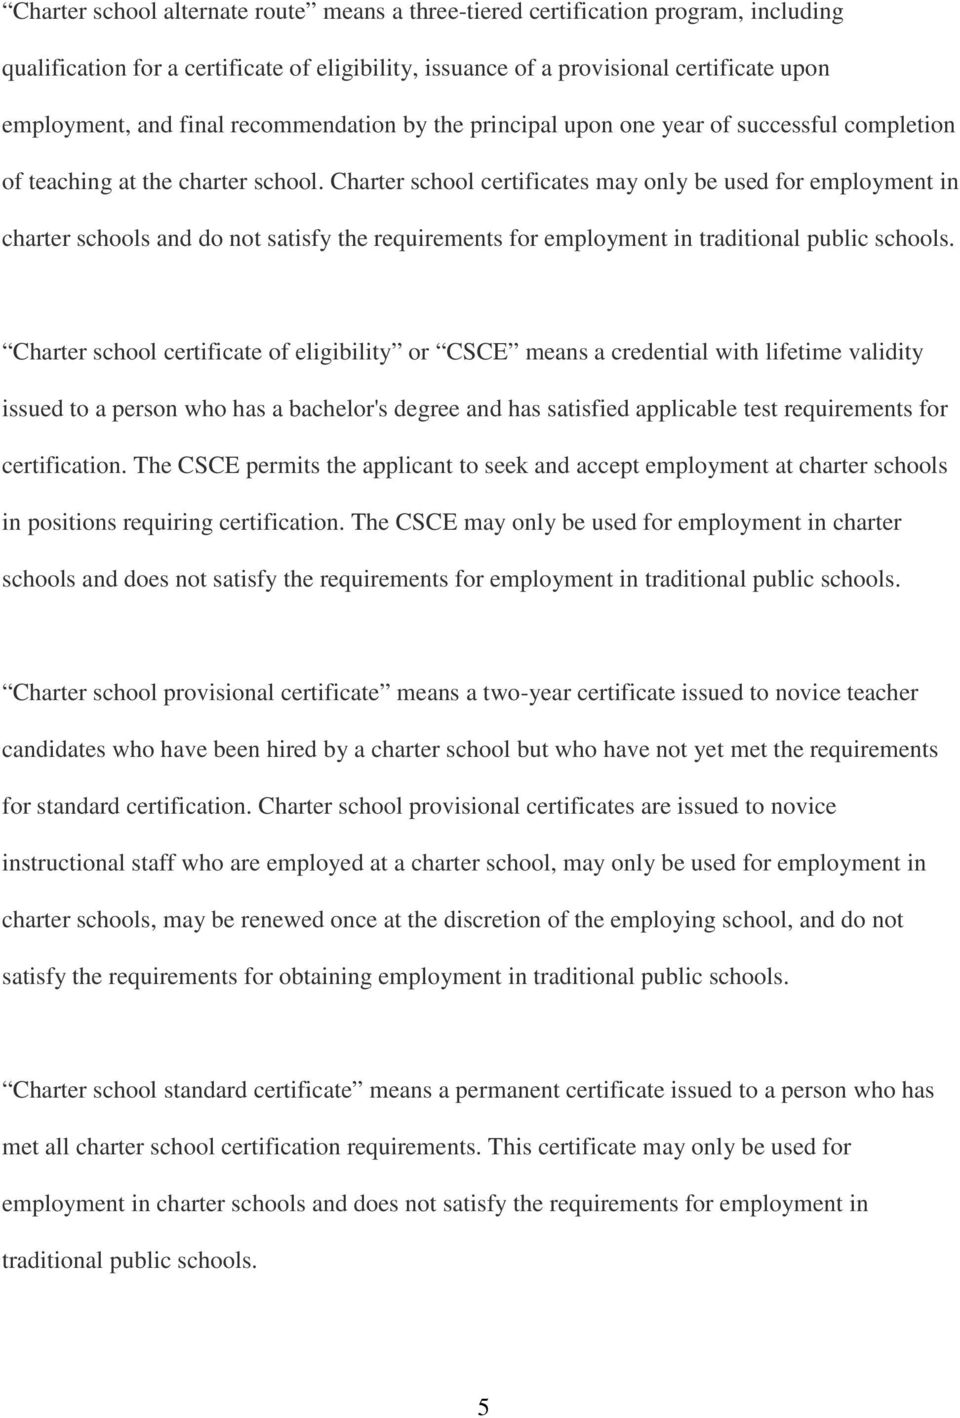 Charter school certificates may only be used for employment in charter schools and do not satisfy the requirements for employment in traditional public schools.